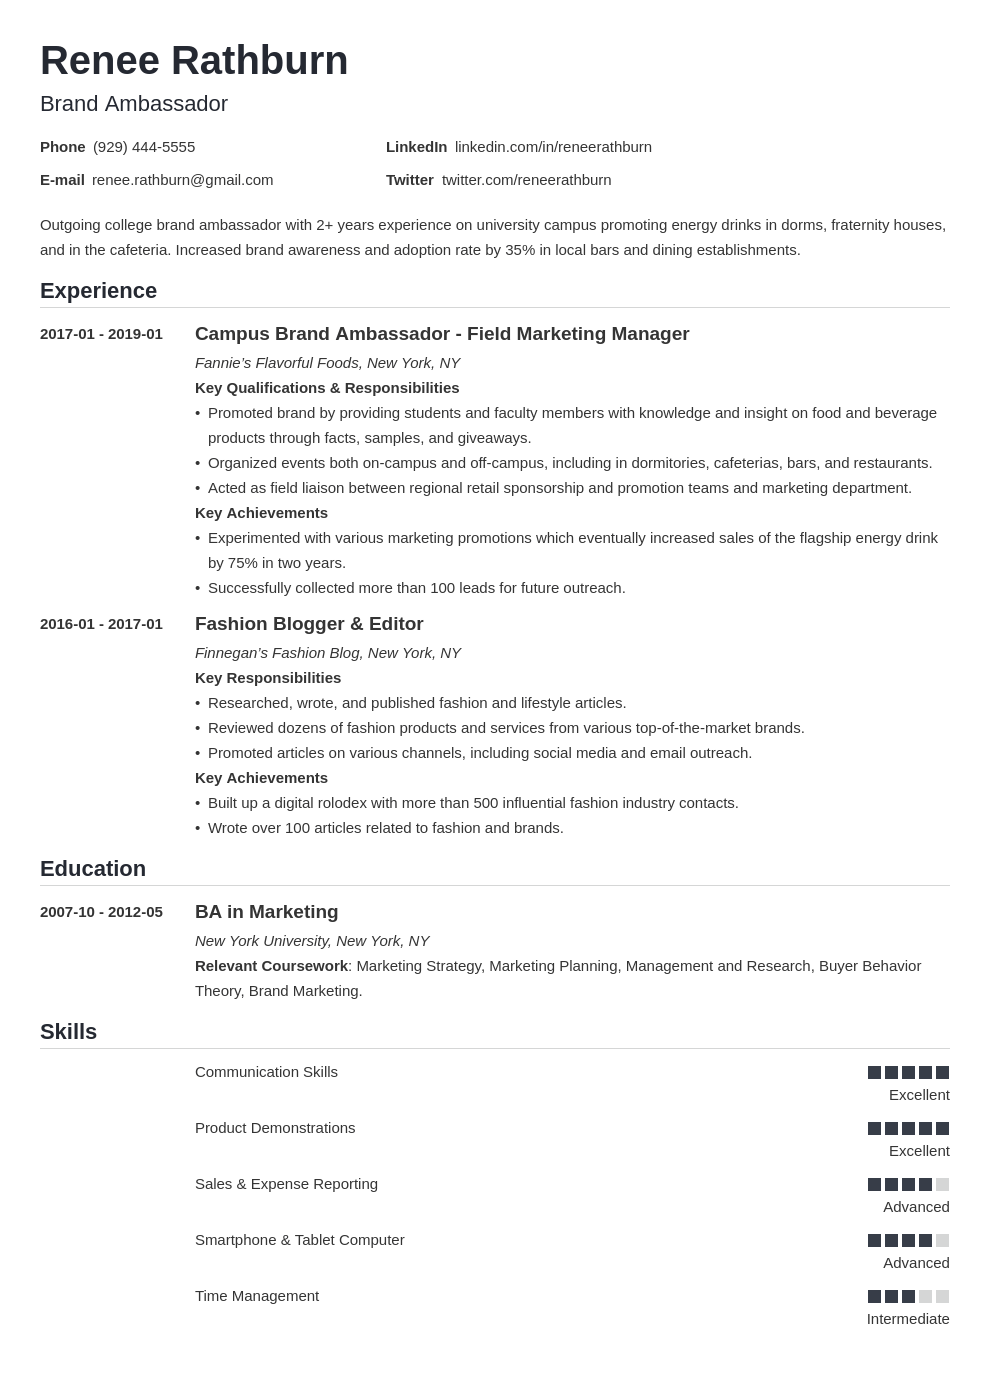 Brand Ambassador Resume [+Examples With Skills and Duties